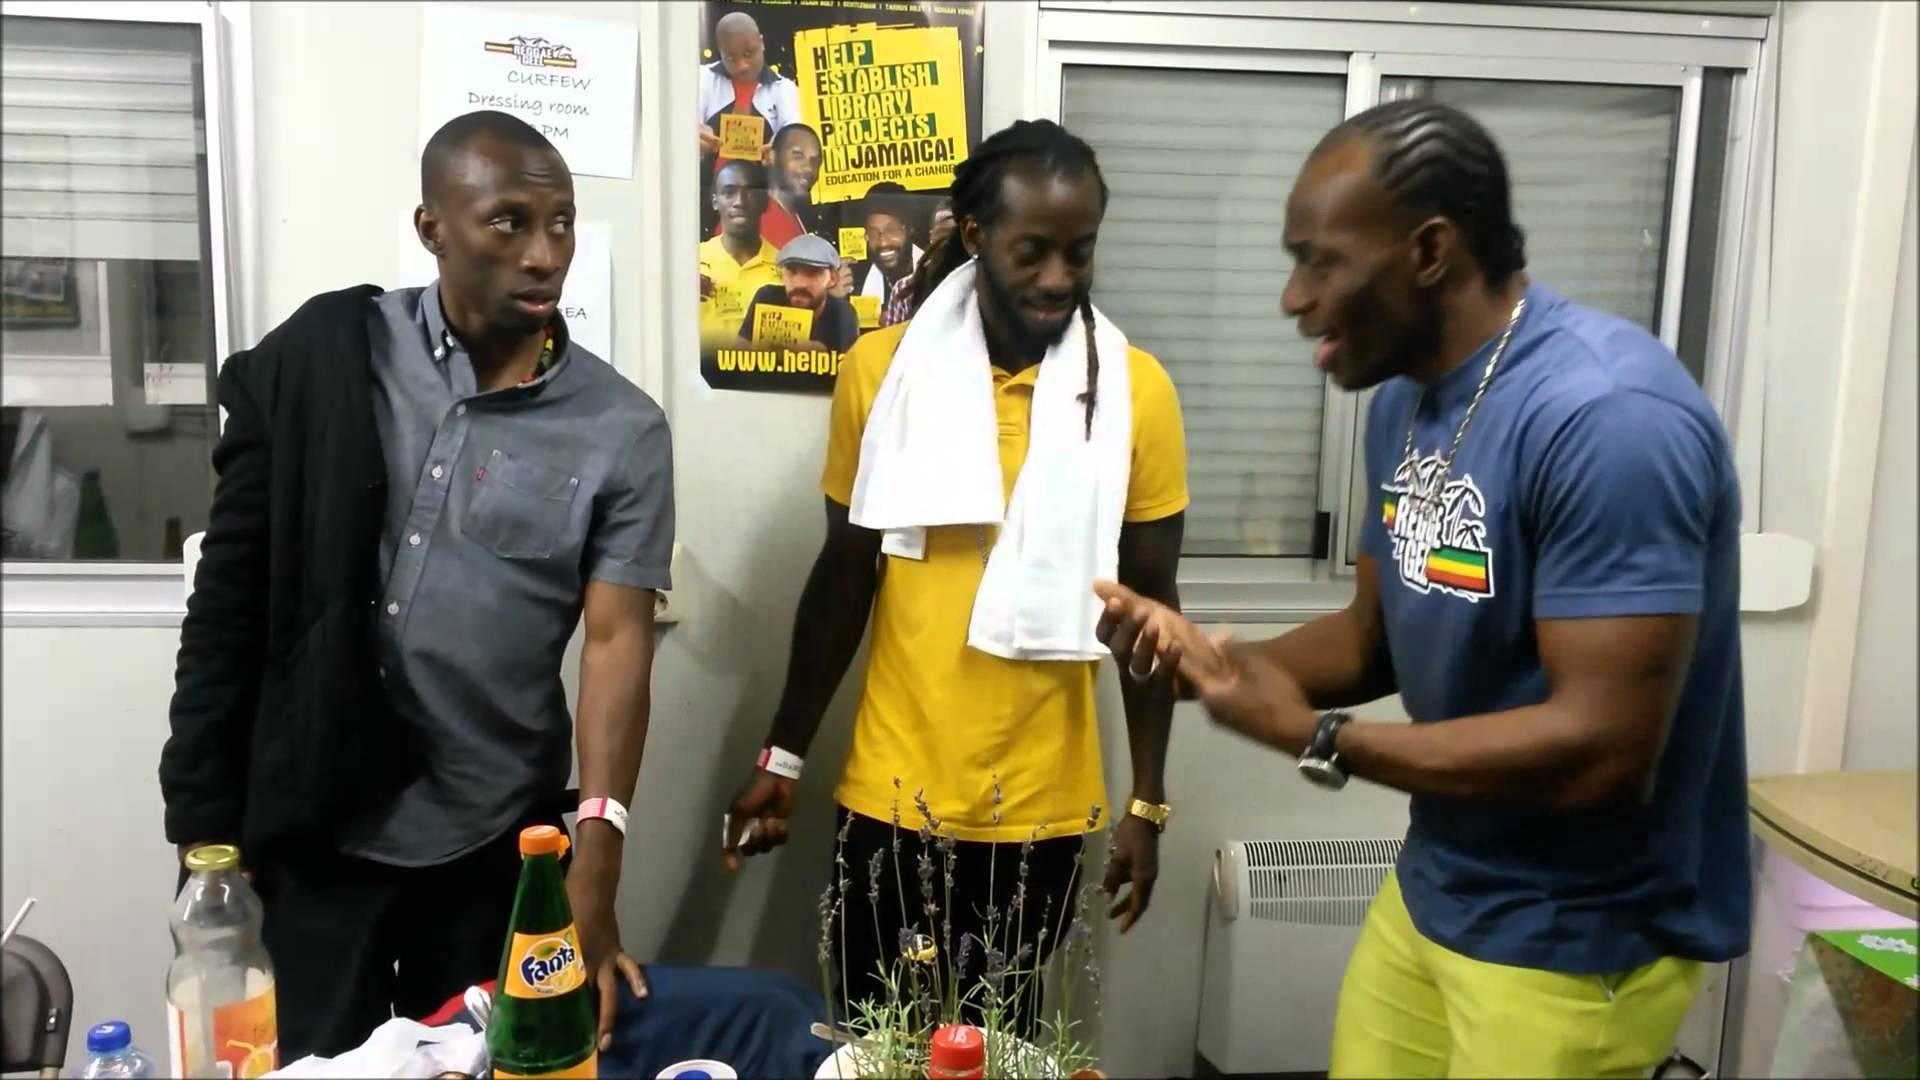 Lukie D, Clay & Christopher Ellis Backstage @ Reggae Geel 2015 [8/1/2015]